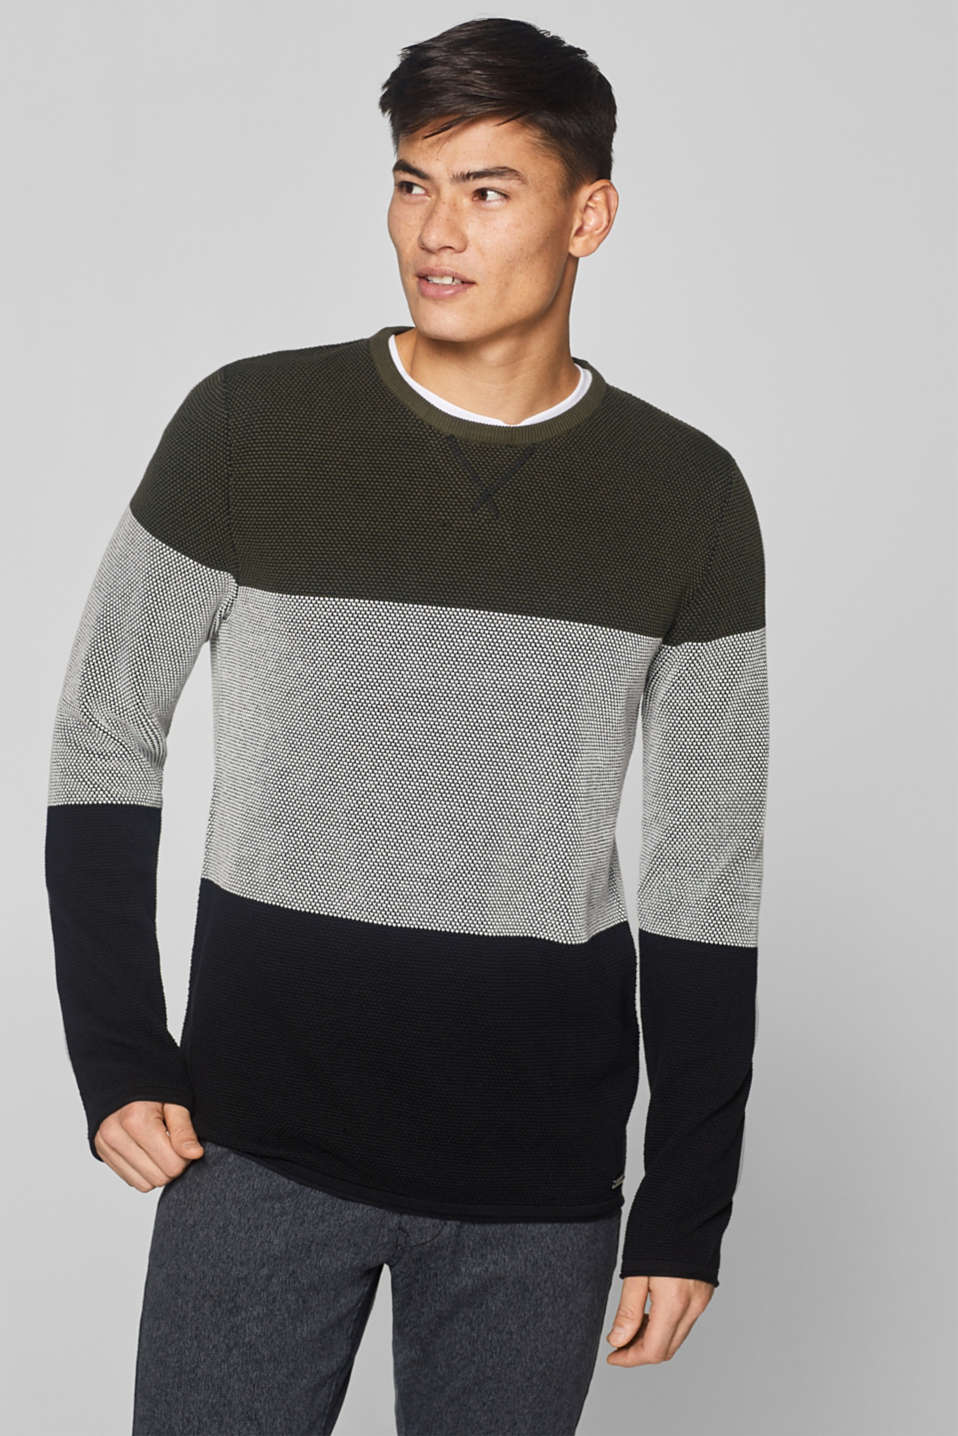 edc - Textured jumper made of 100% cotton